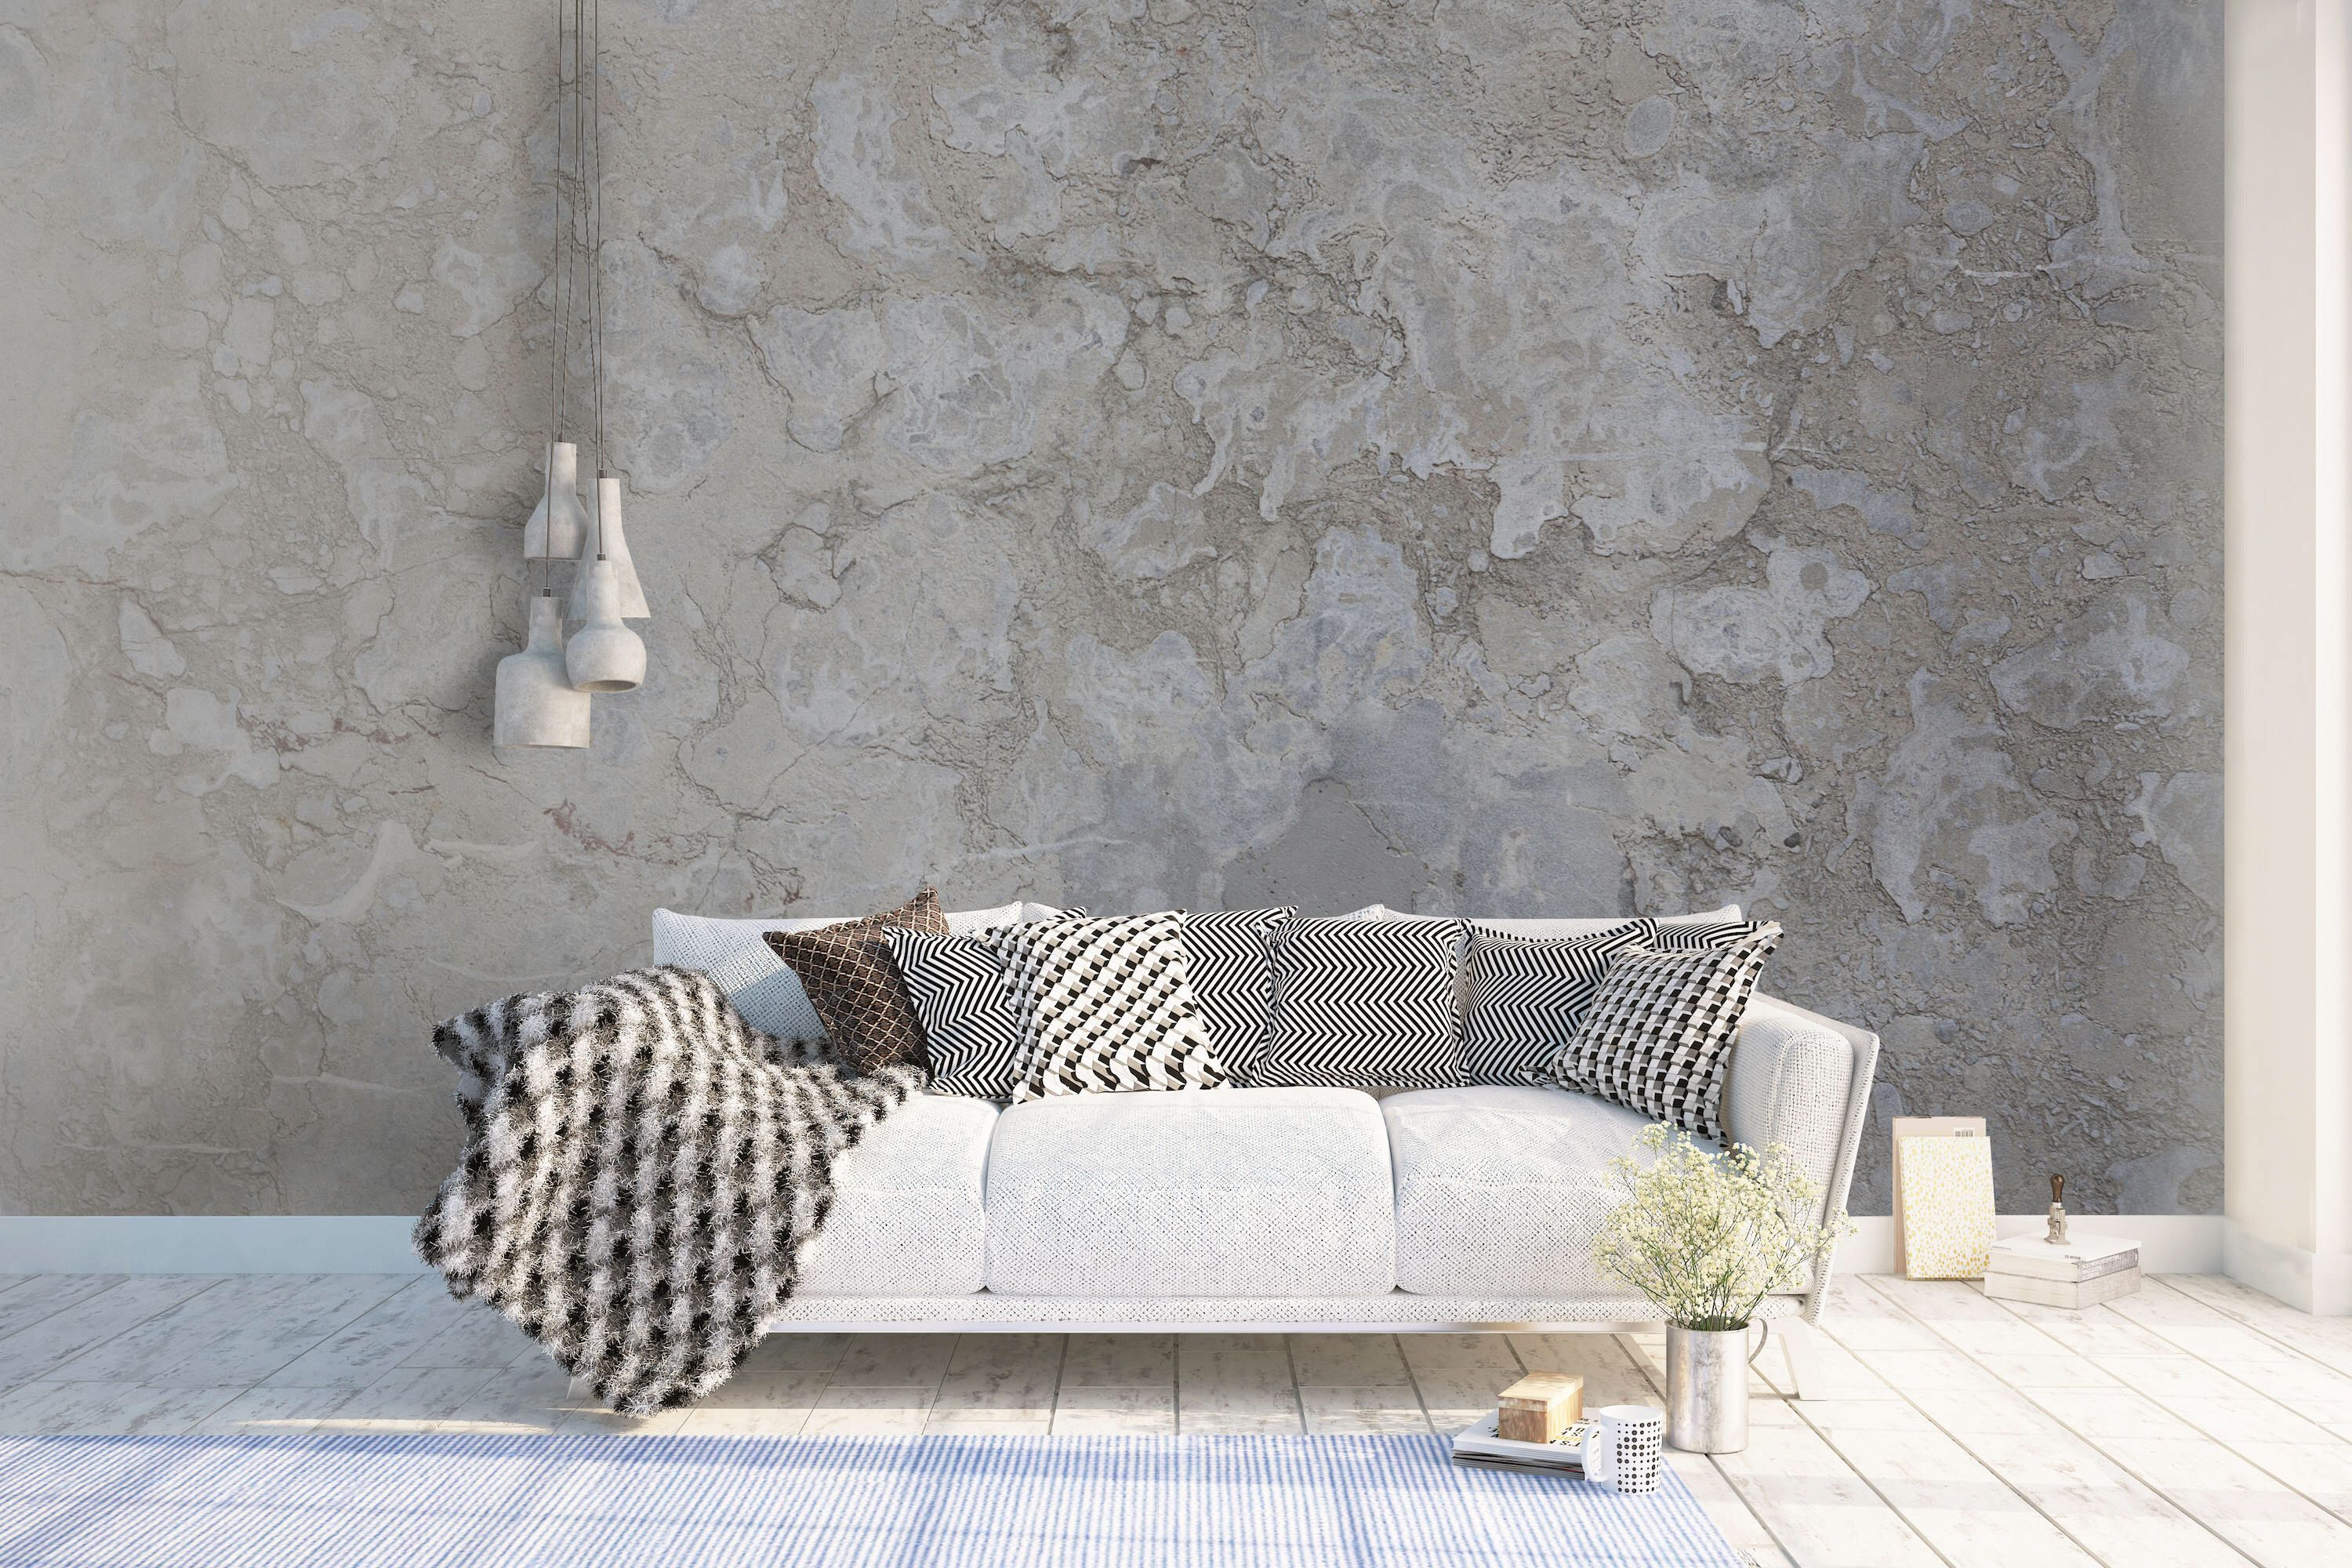 Concrete Wallpaper Murals Non Woven Wallpaper Made To Measure Feature Wall Wall Art Decals Home Home Wall Decor Concrete Wallpaper Wallpaper Living Room